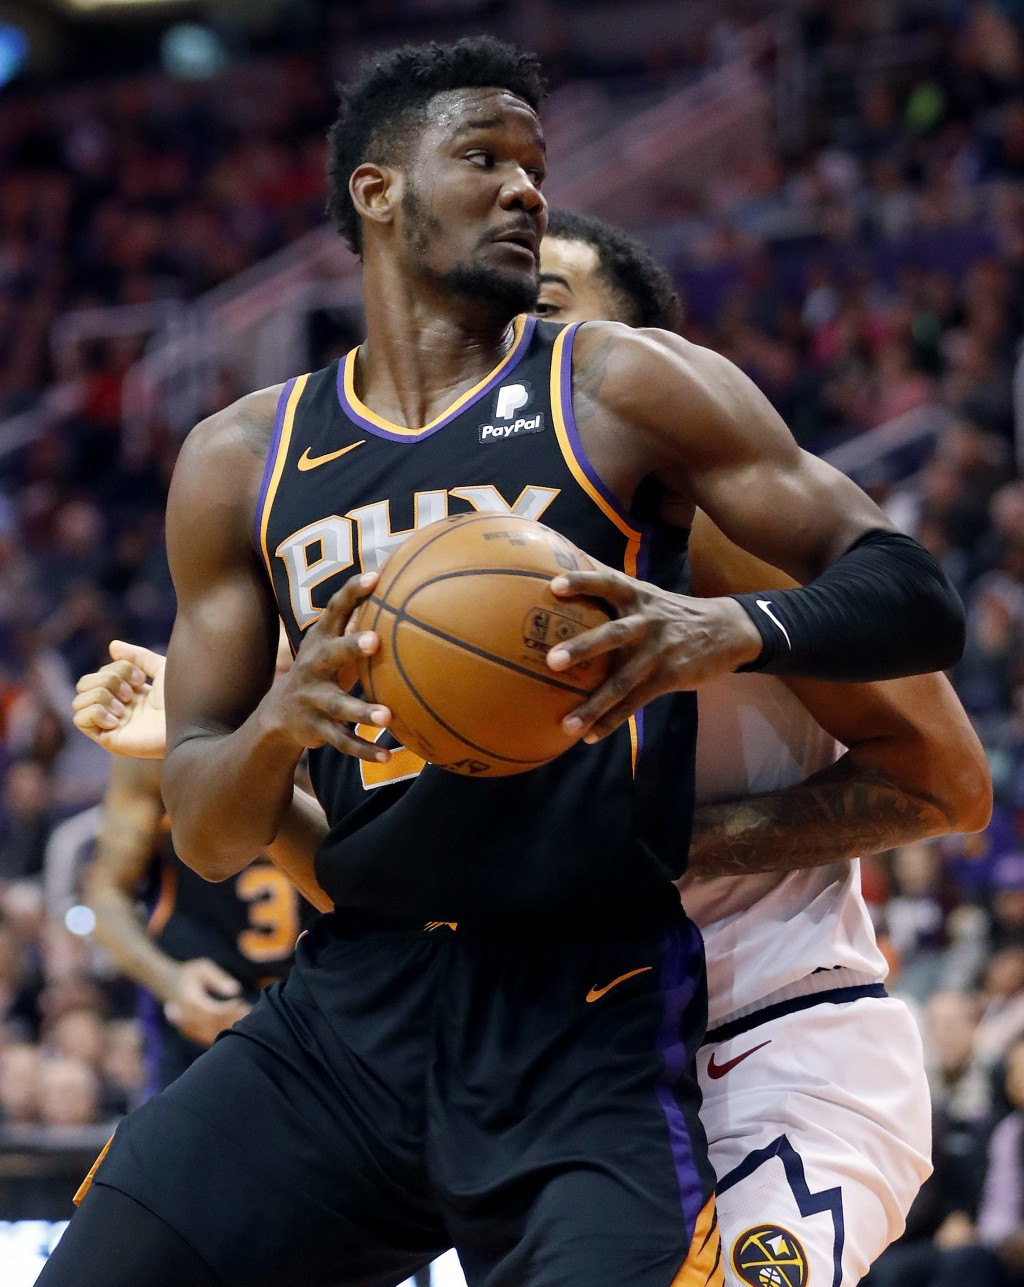 Phoenix Suns center Deandre Ayton (22) backs against the Denver Nuggets during the second half of an NBA basketball game, Saturday, Dec. 29, 2018, in ...